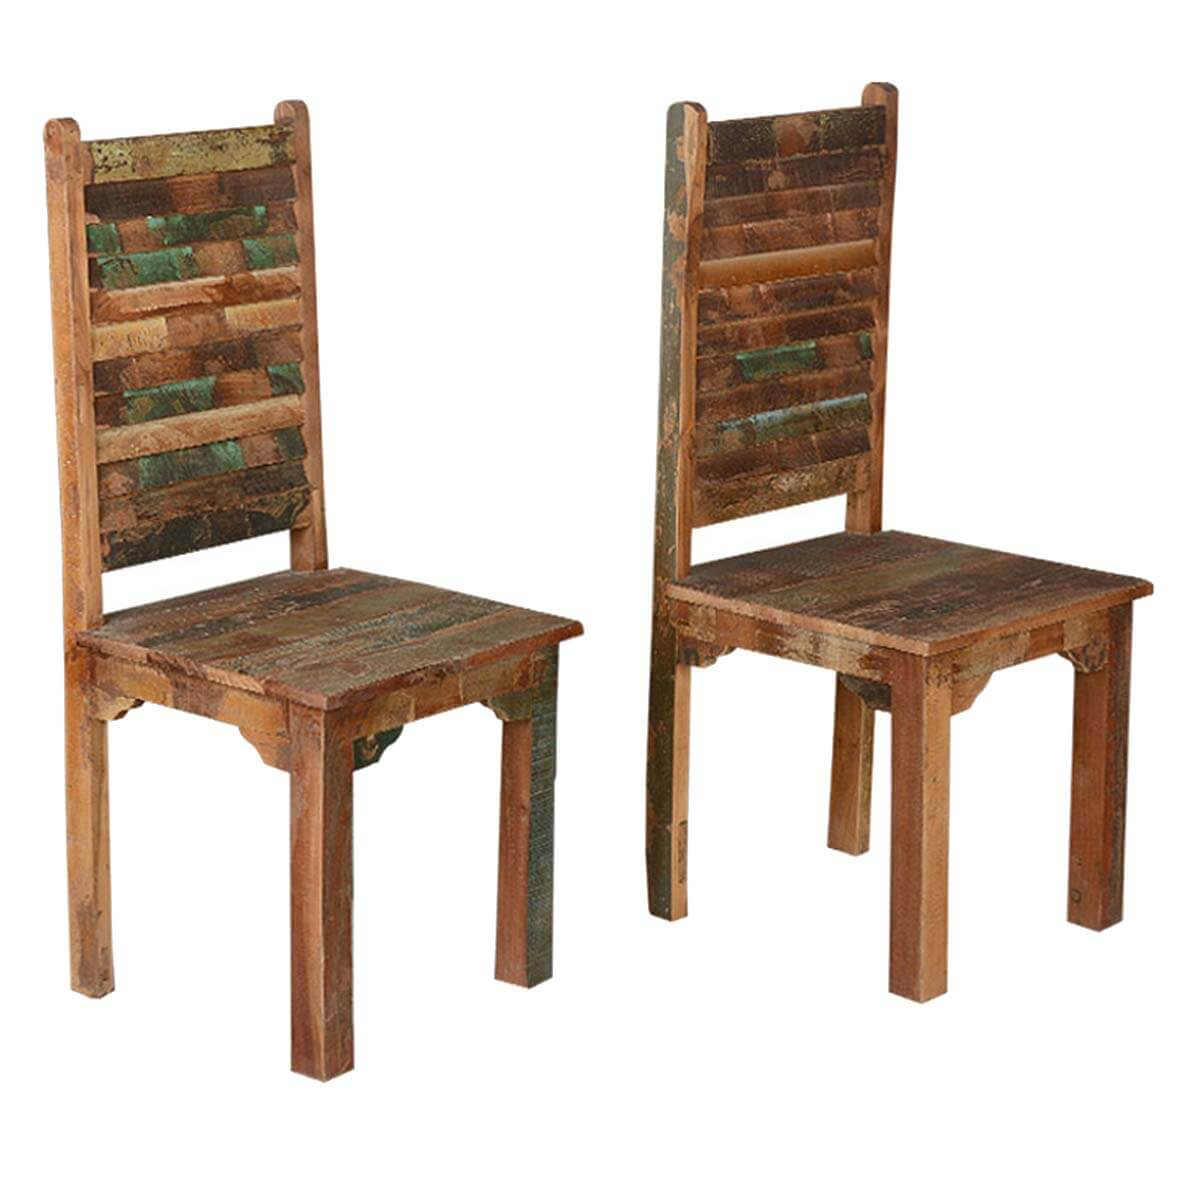 Rustic distressed reclaimed wood multi color dining chairs for Colorful dining chairs